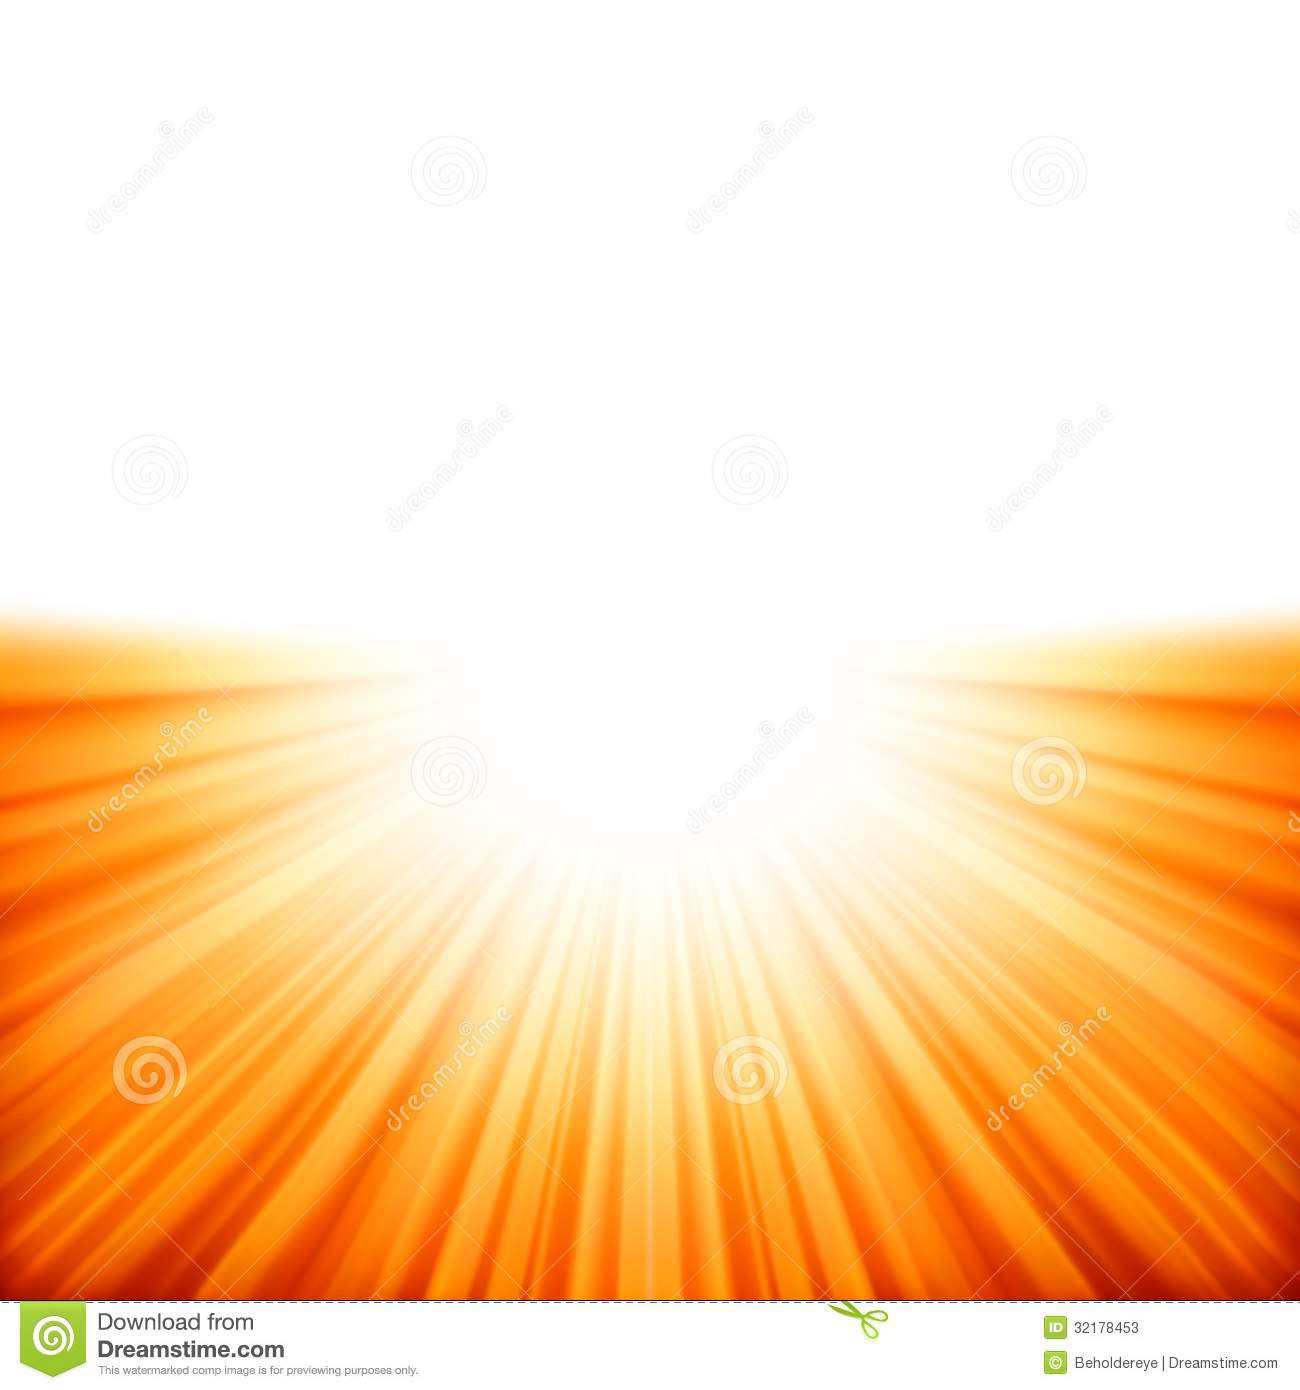 Sunburst Rays Of Sunlight Tenplate. EPS 10 Stock Photos - Image ...